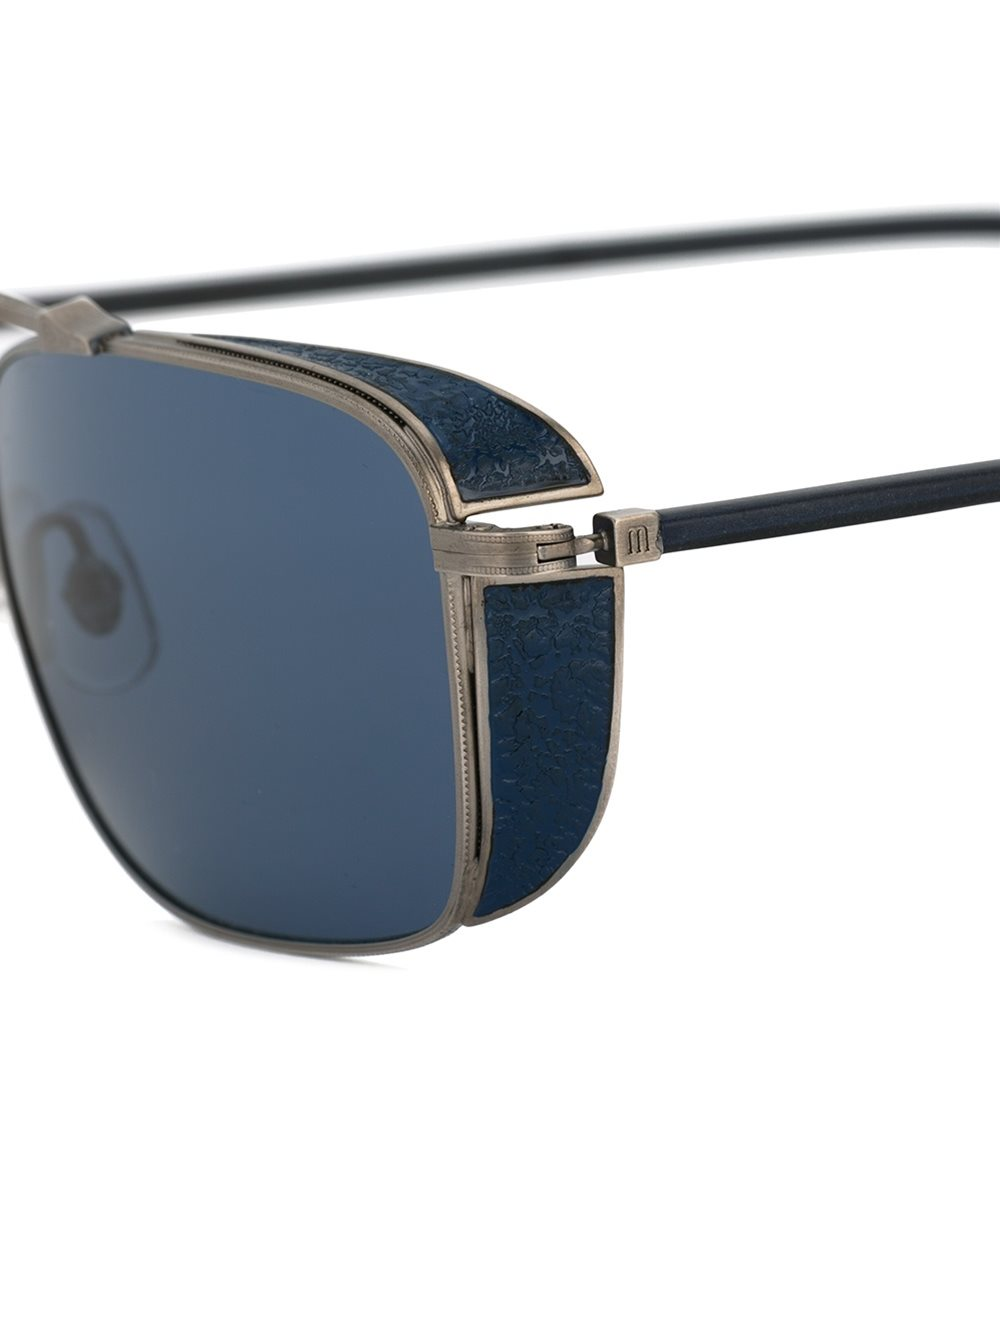 Mens-Square Silver Luxe Sunglasses - THE UNIQUE FIT